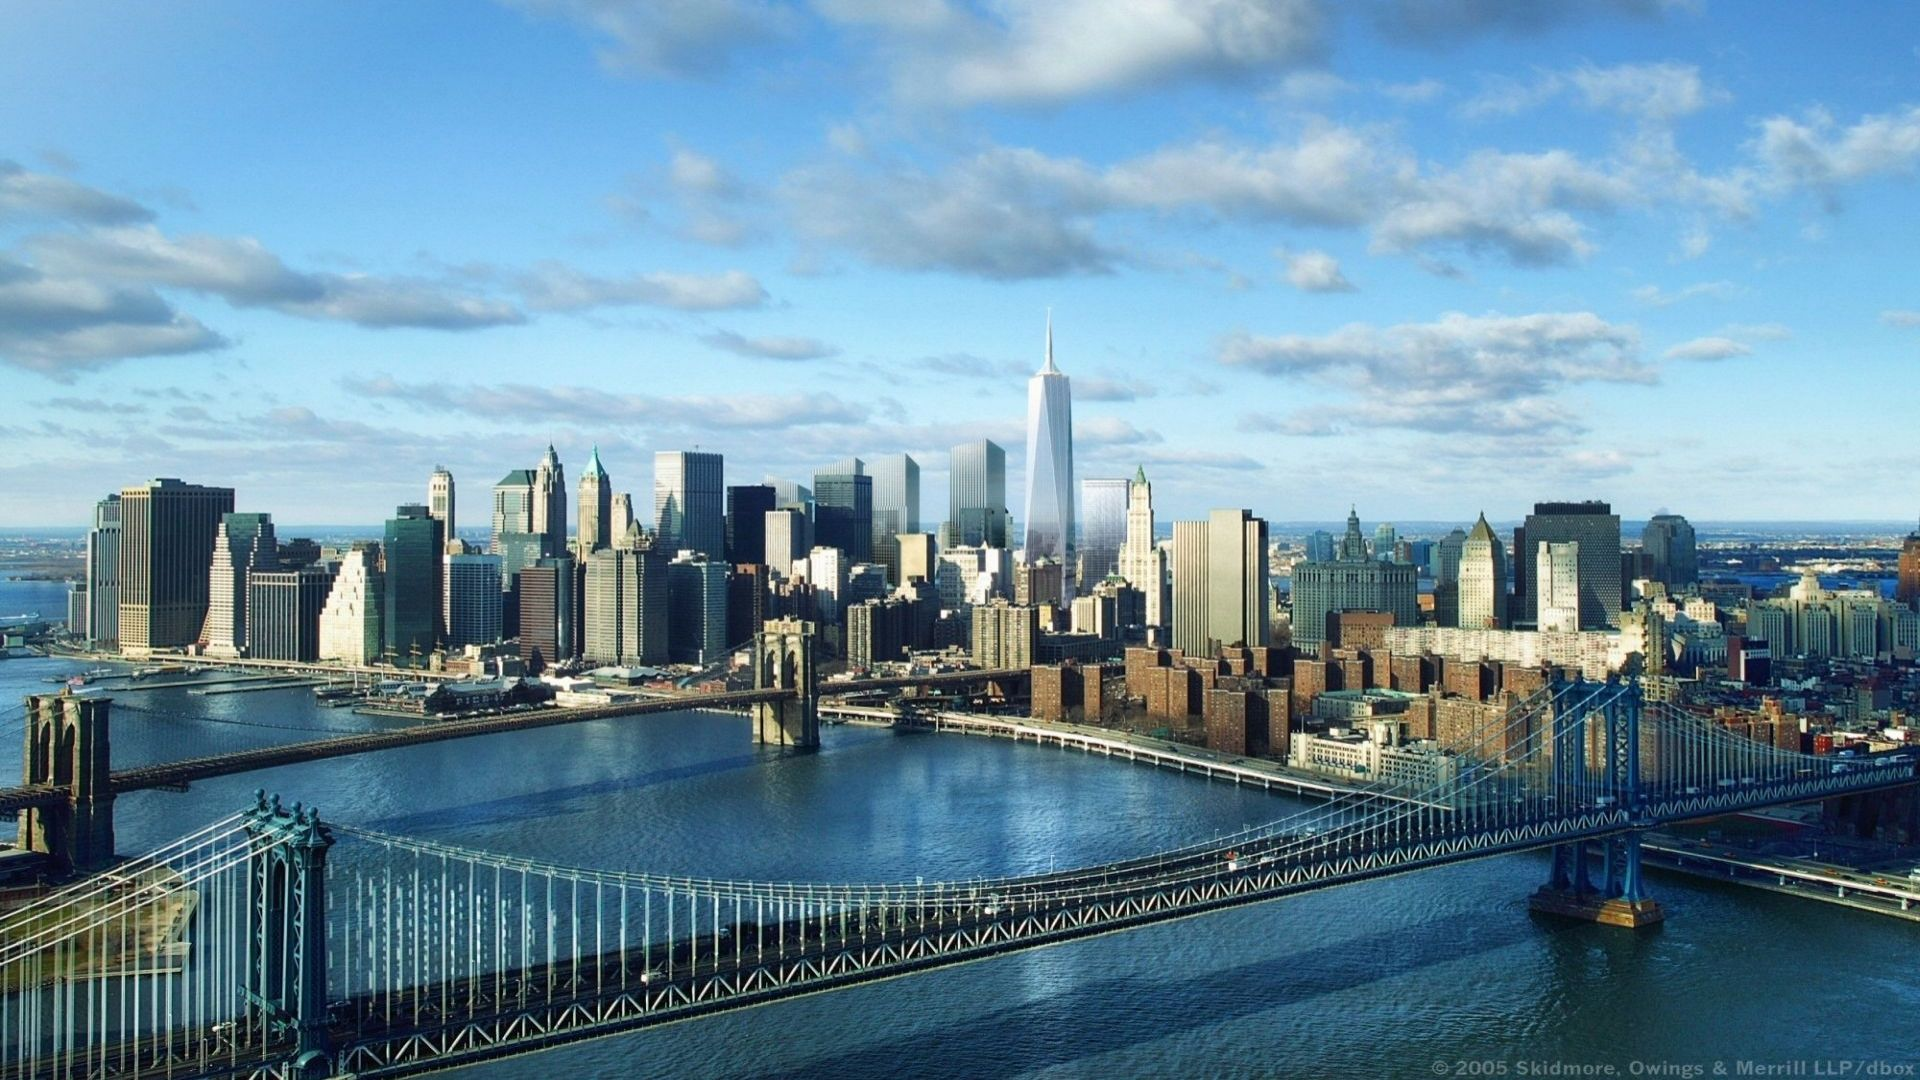 40 hd new york city wallpapers backgrounds for free download for Immagini new york hd